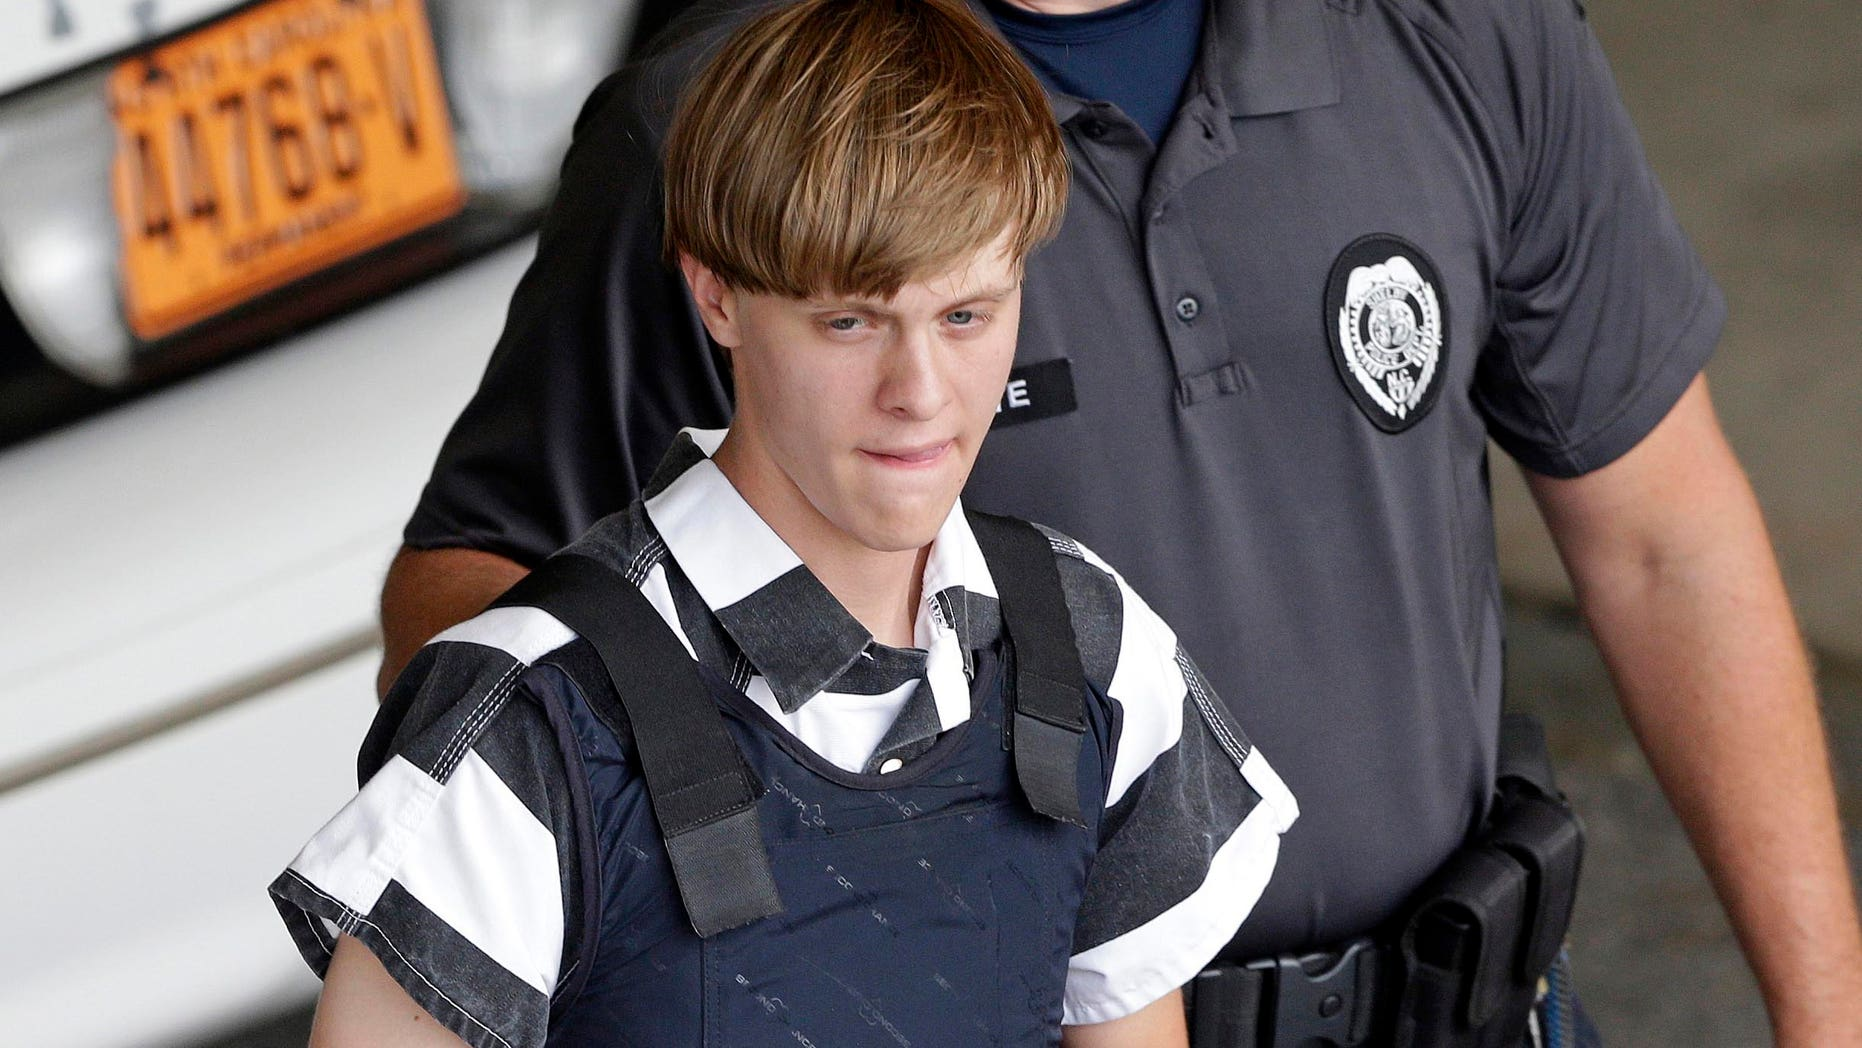 In this June 18, 2015 file photo, Charleston, S.C., shooting suspect Dylann Storm Roof is escorted from the Cleveland County Courthouse in Shelby, N.C